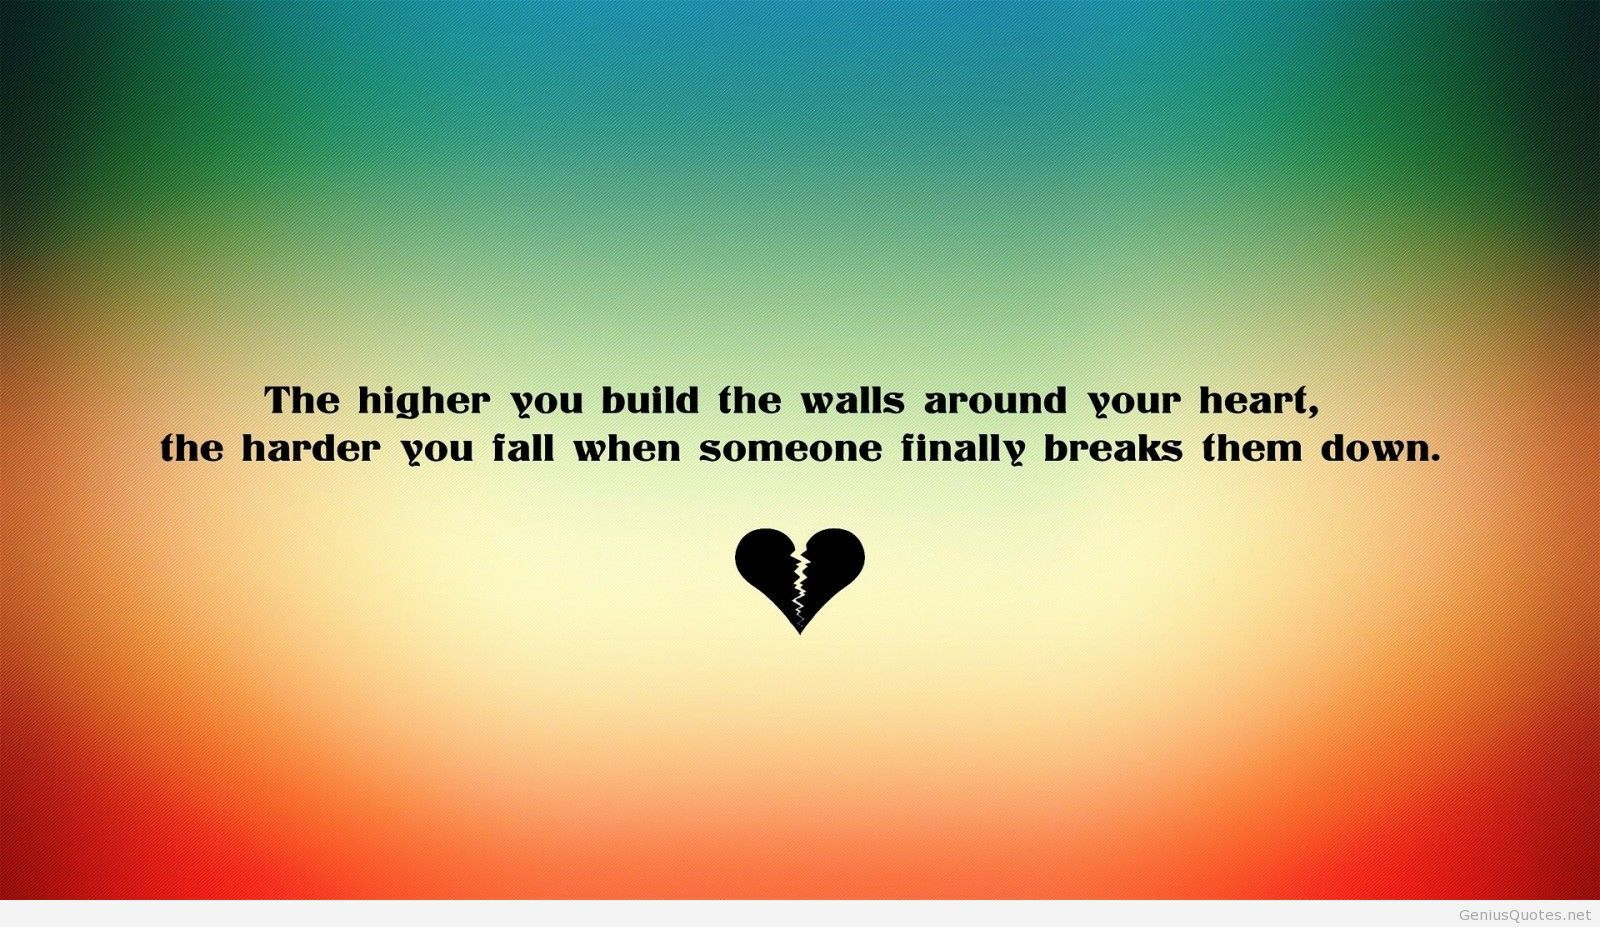 Broken heart love wallpaper with quote 1600x927